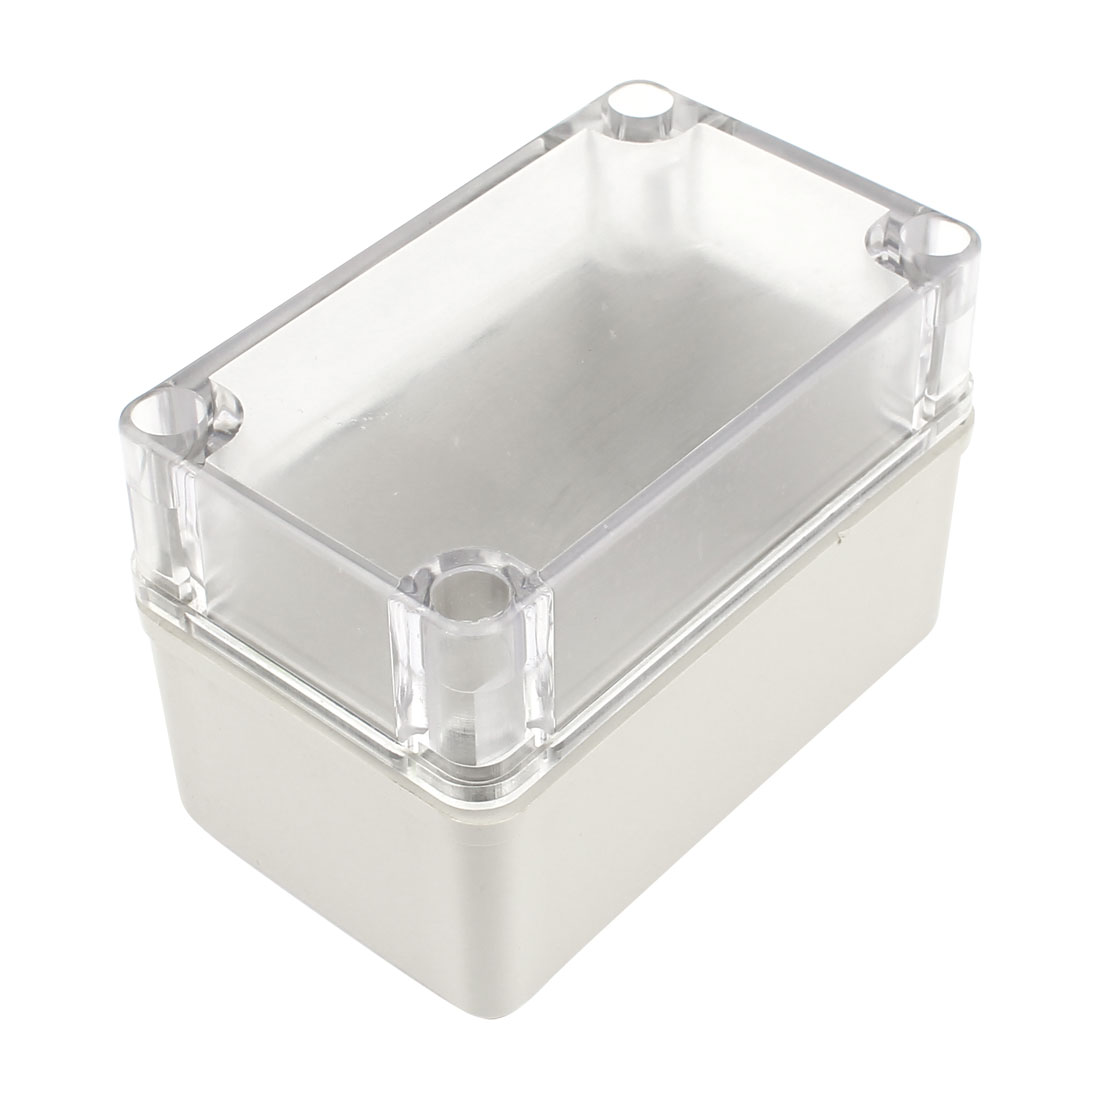 125mm x 80mm x 85mm Waterproof Plastic Sealed DIY Joint Electrical Junction Box